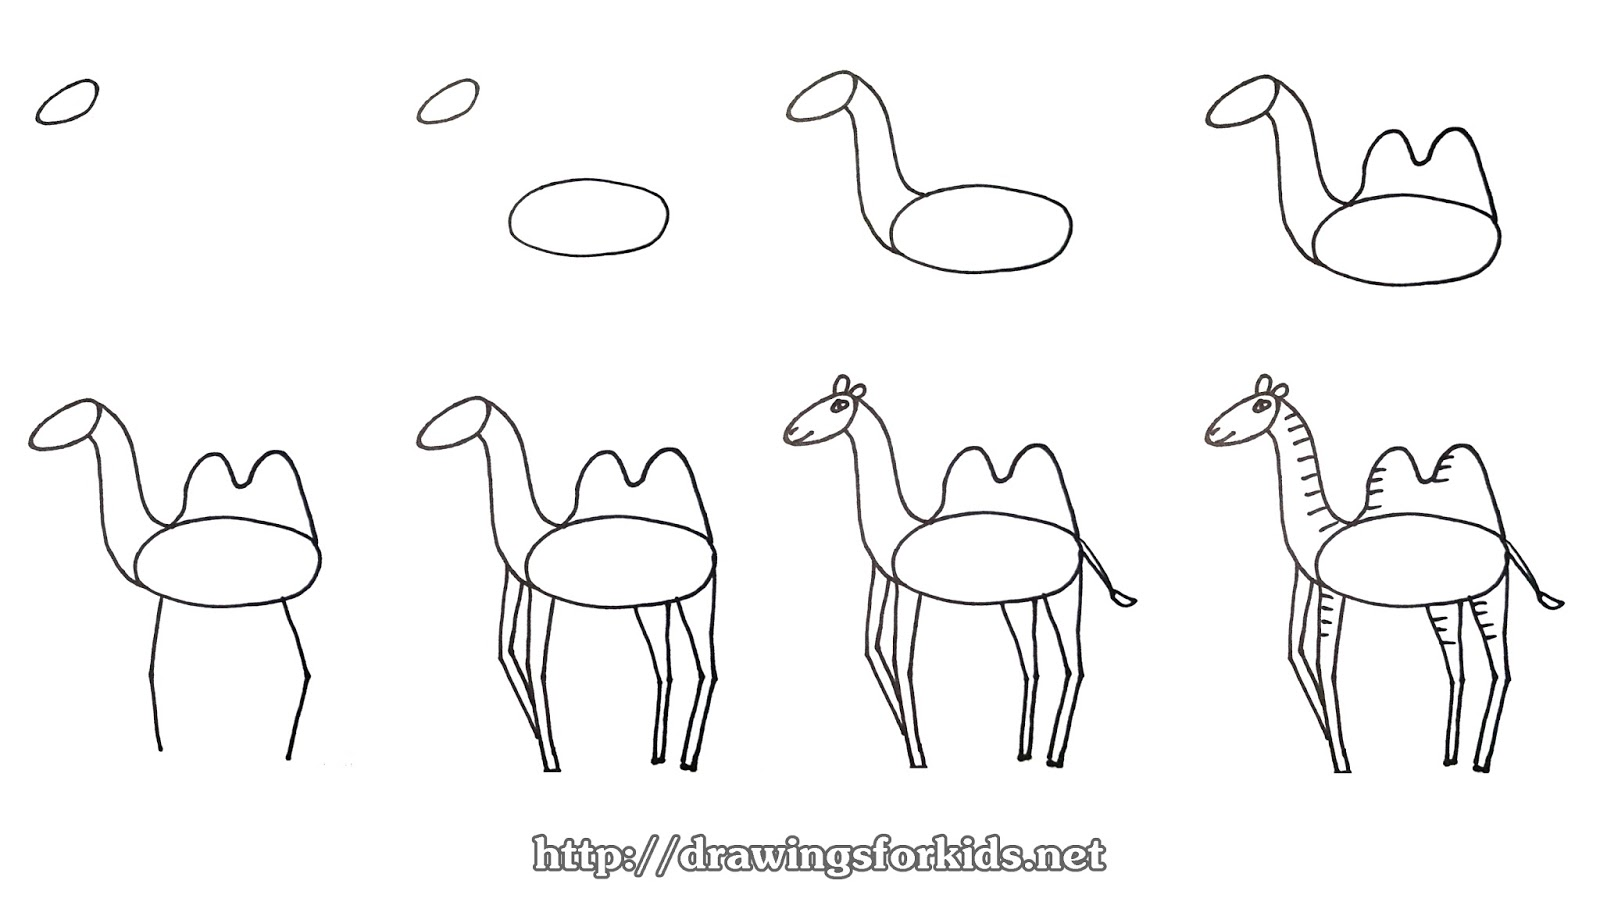 Uncategorized How To Draw A Camel Step By Step how to draw a camel for kids drawingsforkids net video tutorials minh